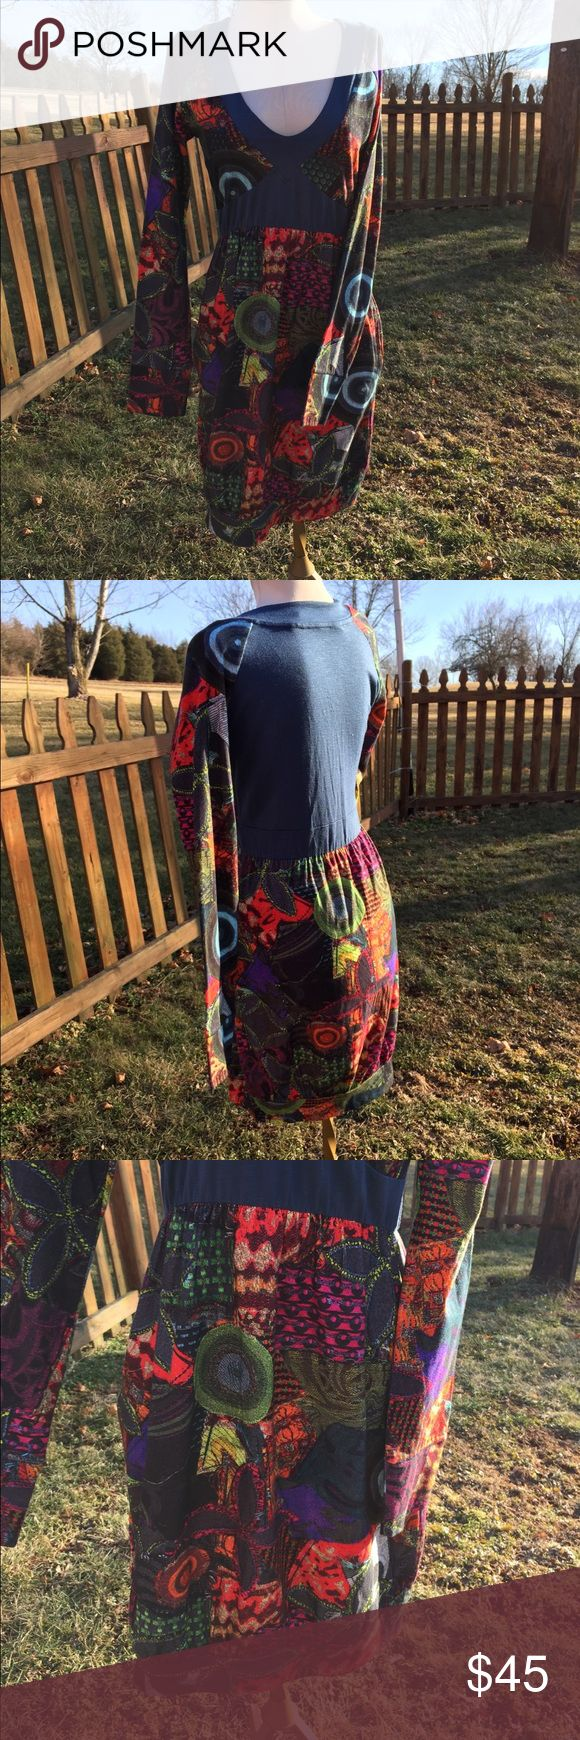 """Desigual Boho Abstract Colorful Dress M Cute super soft cotton , viscose, spandex blend fabric.  Bright abstract pattern on a slate blue. Stated size m. Bust up to 37"""". Length from shoulder to bottom 35@. Pockets on side seam skirt of dress. Excellent clean condition. Desigual Dresses"""